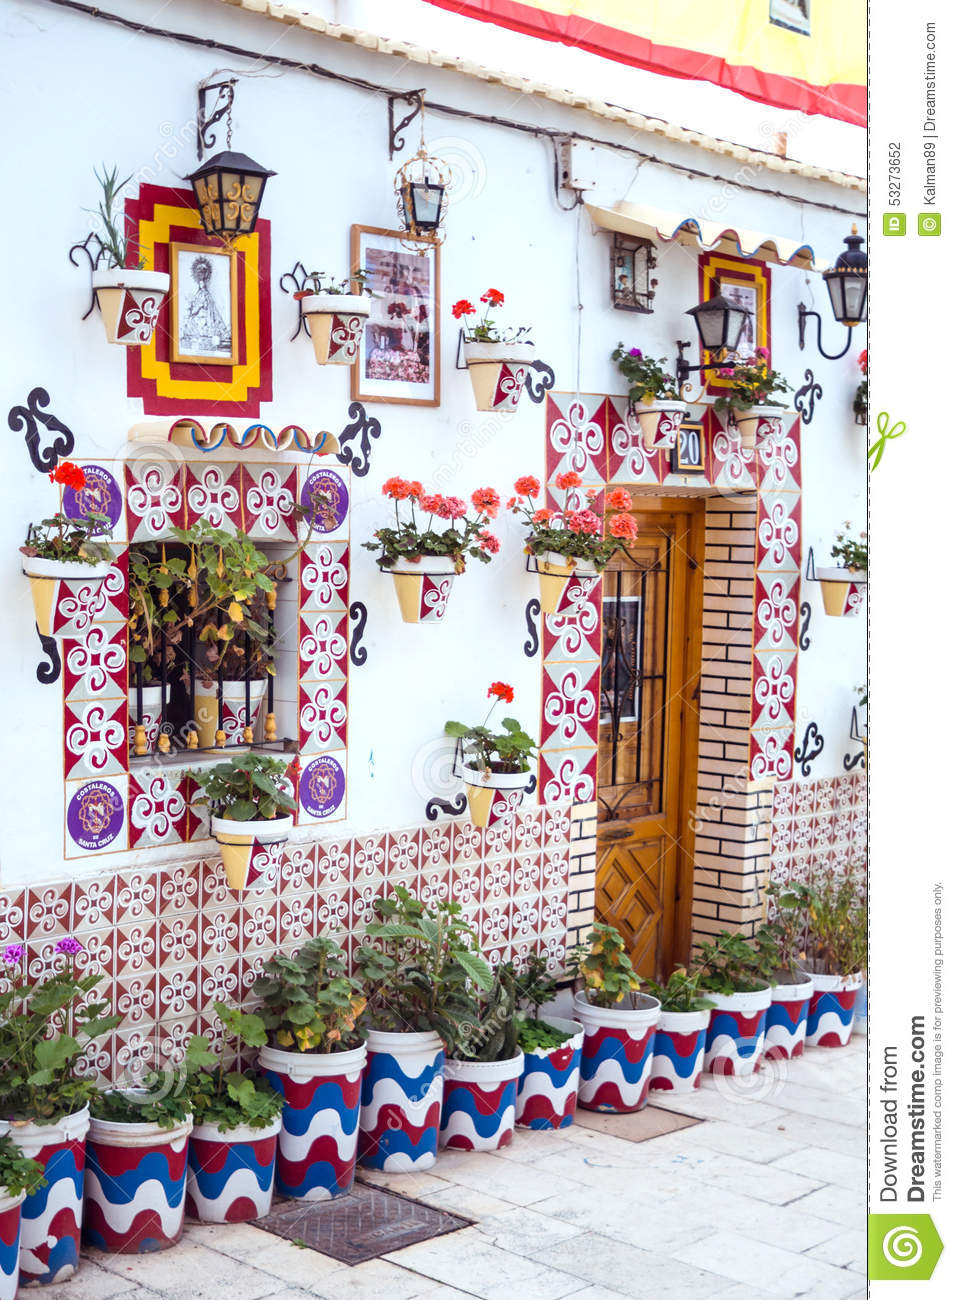 Decoration Espagnole Maison : Maison traditionnelle espagnole photo stock image du